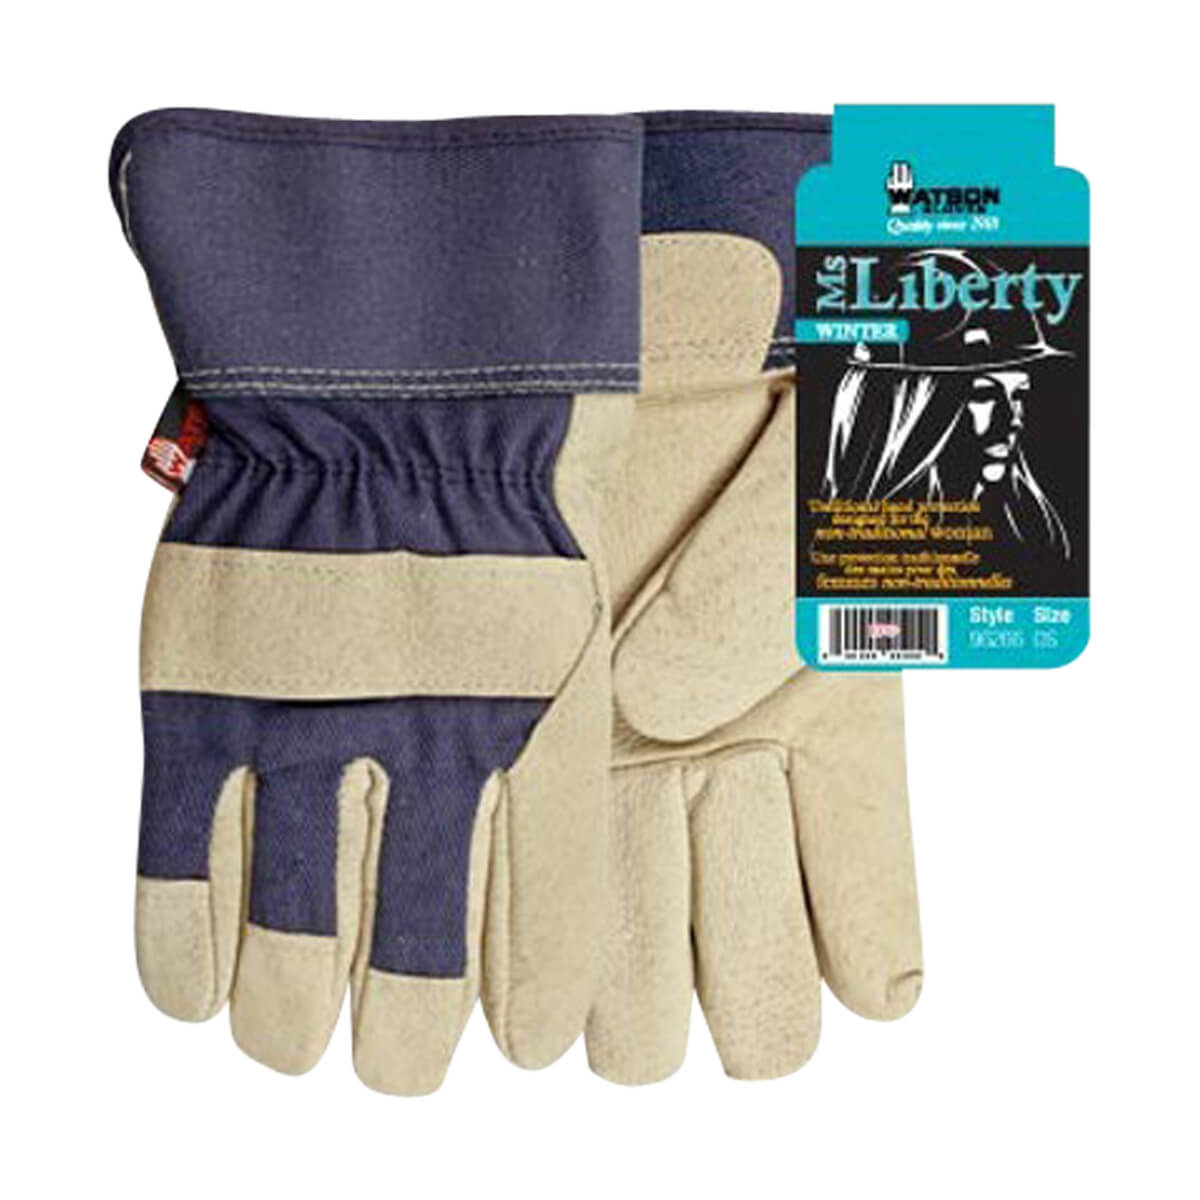 Lined Ms Liberty Gloves